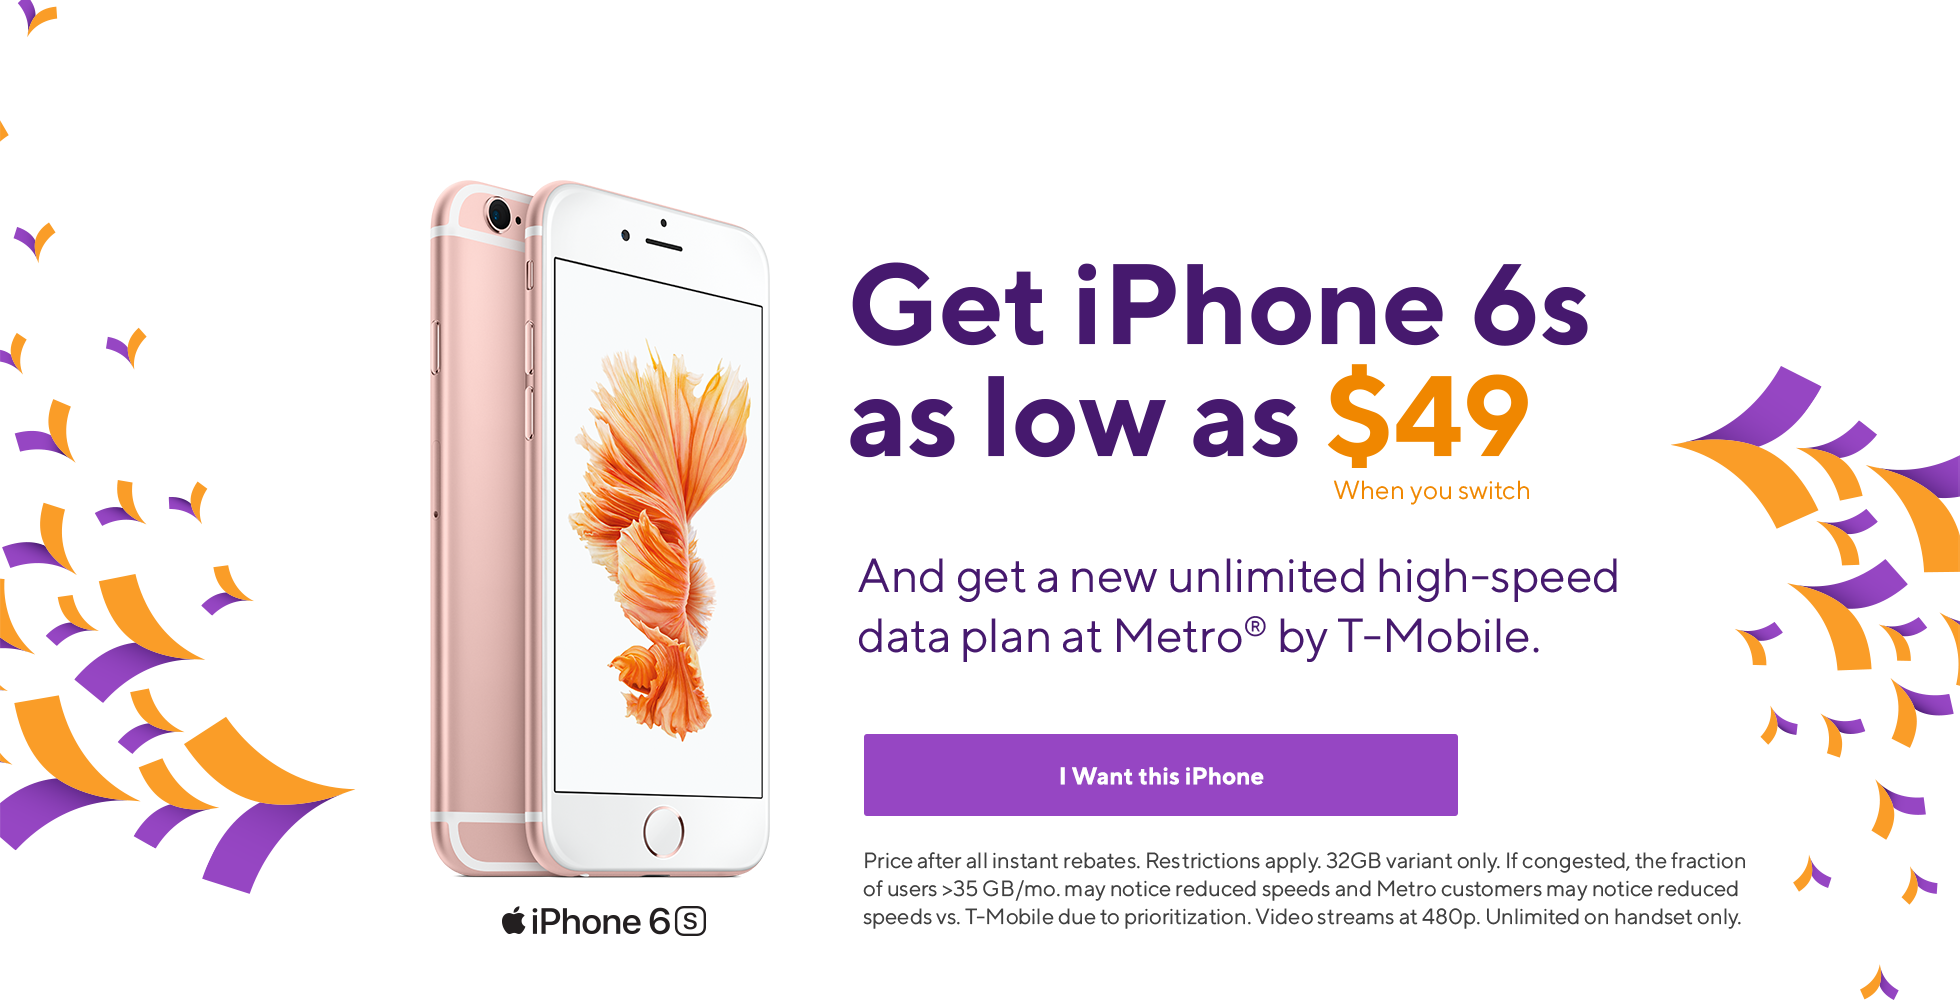 Get Iphone 6s From Metro By T Mobile For As Low As 49 When You Switch And Get An Unlimited High Speed Data Plan Price Iphone 6s Rose Gold Iphone Iphone Price